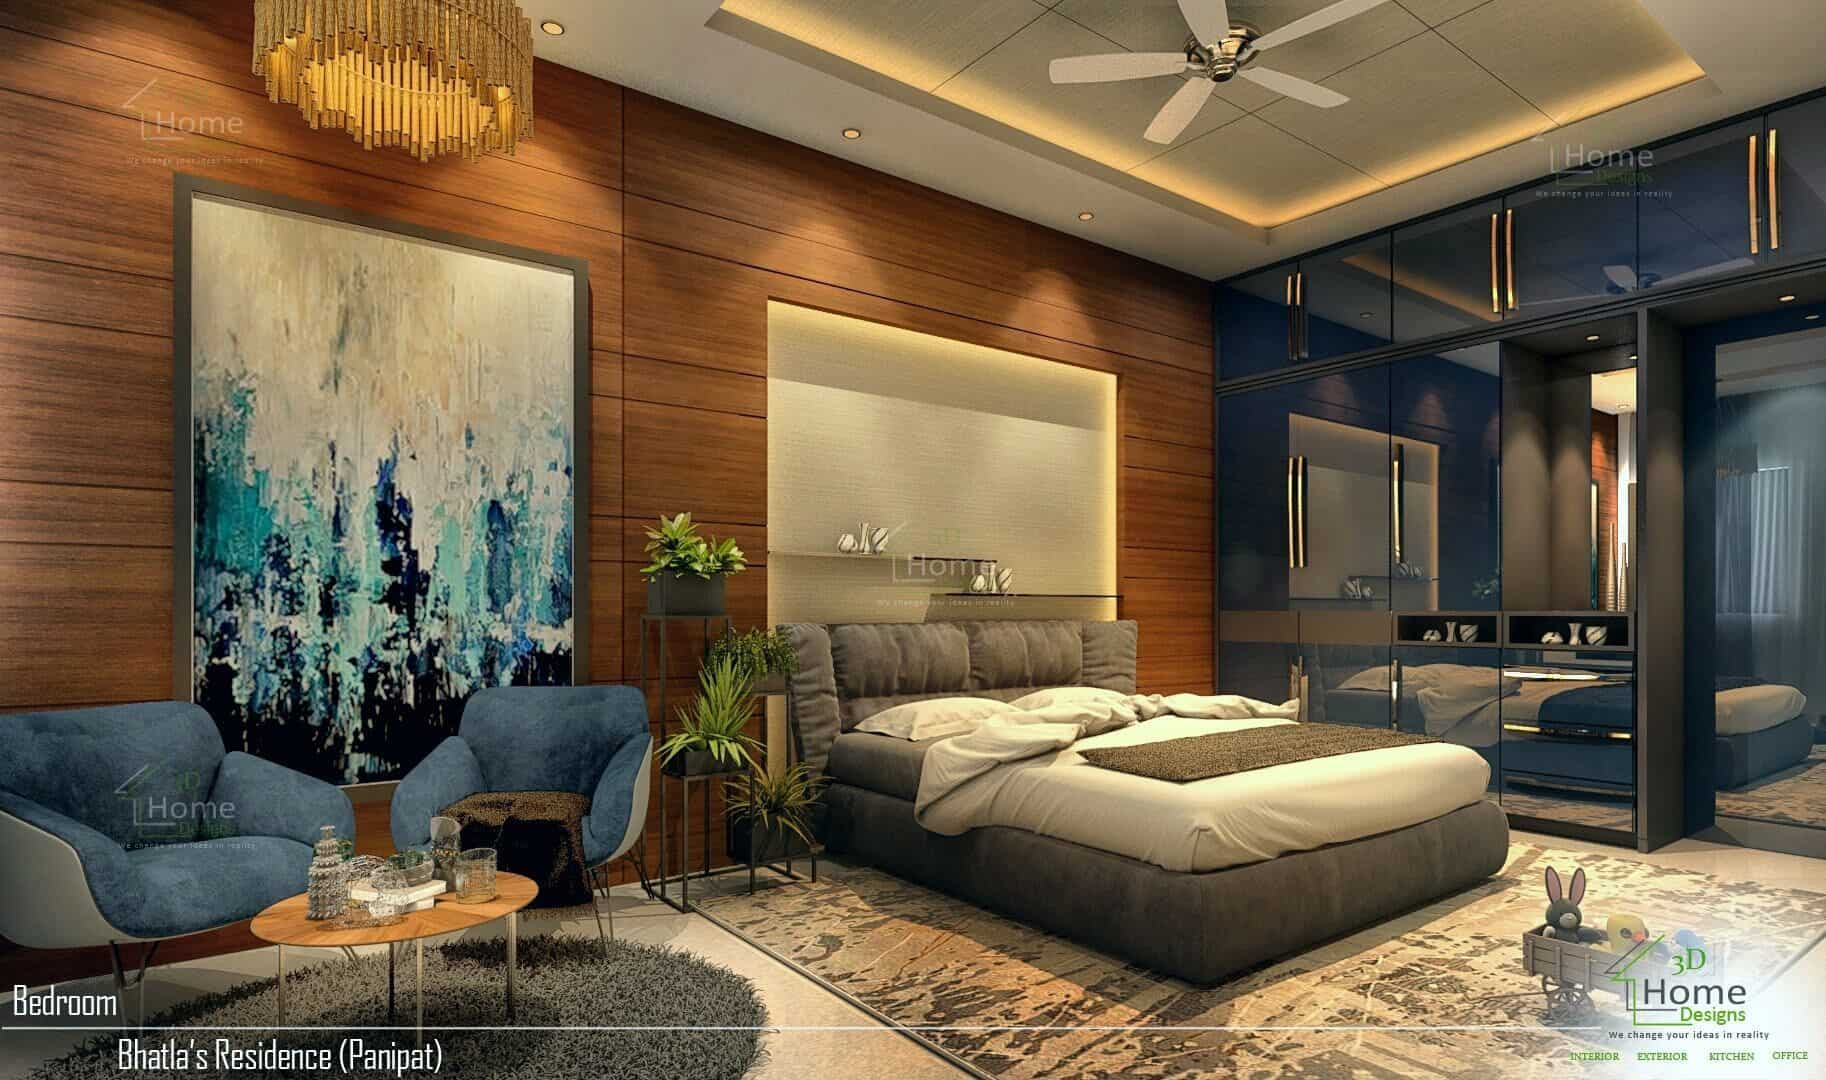 3d home designs architects in panipat justdial - Ge Home Design